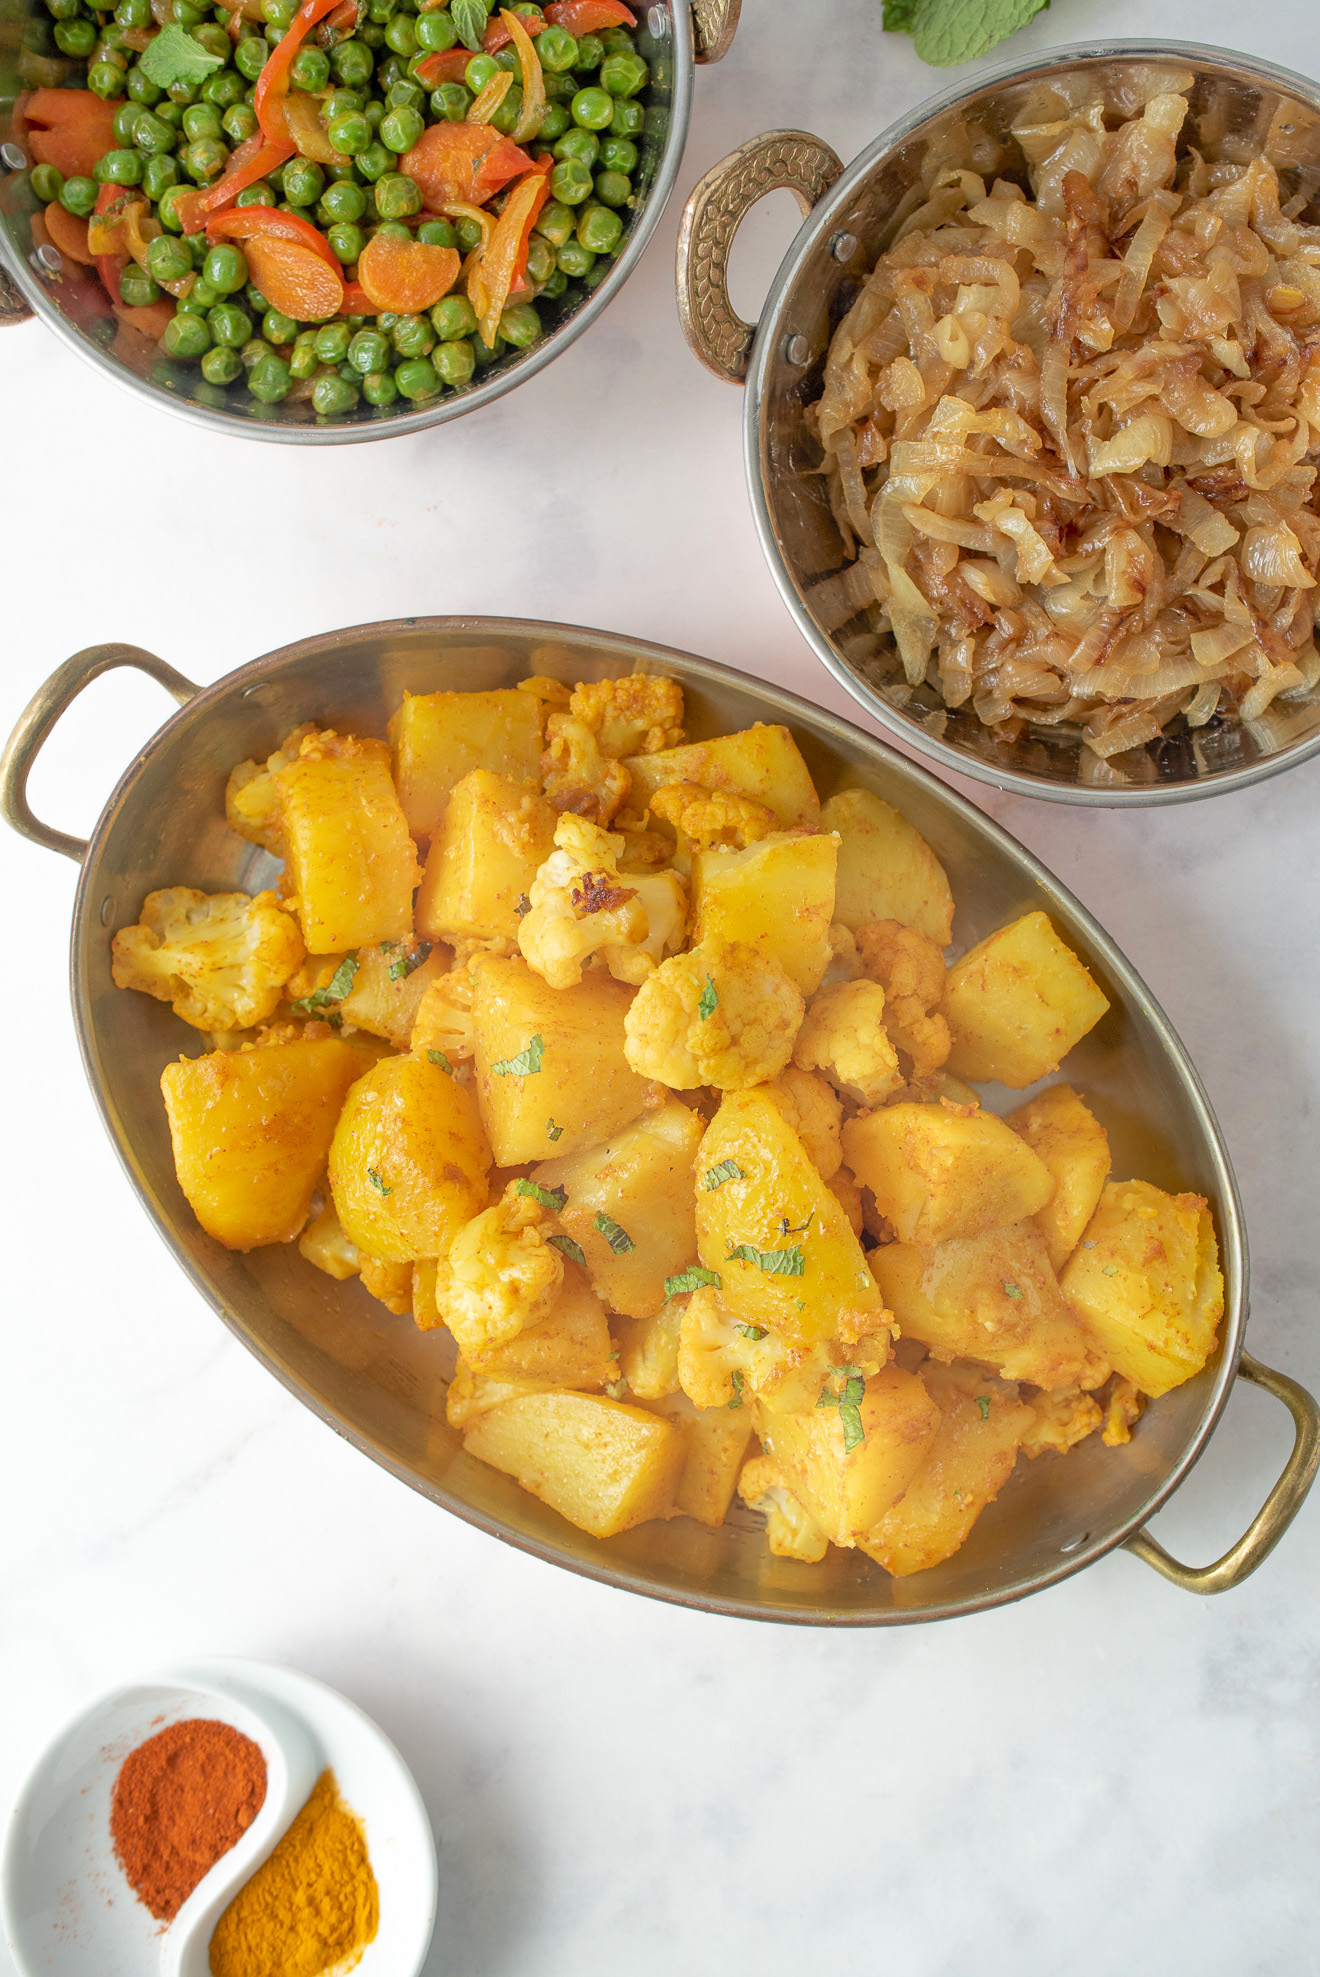 Indian aloo gobi from overhead with peas, curry caramelized onions in serving dishes